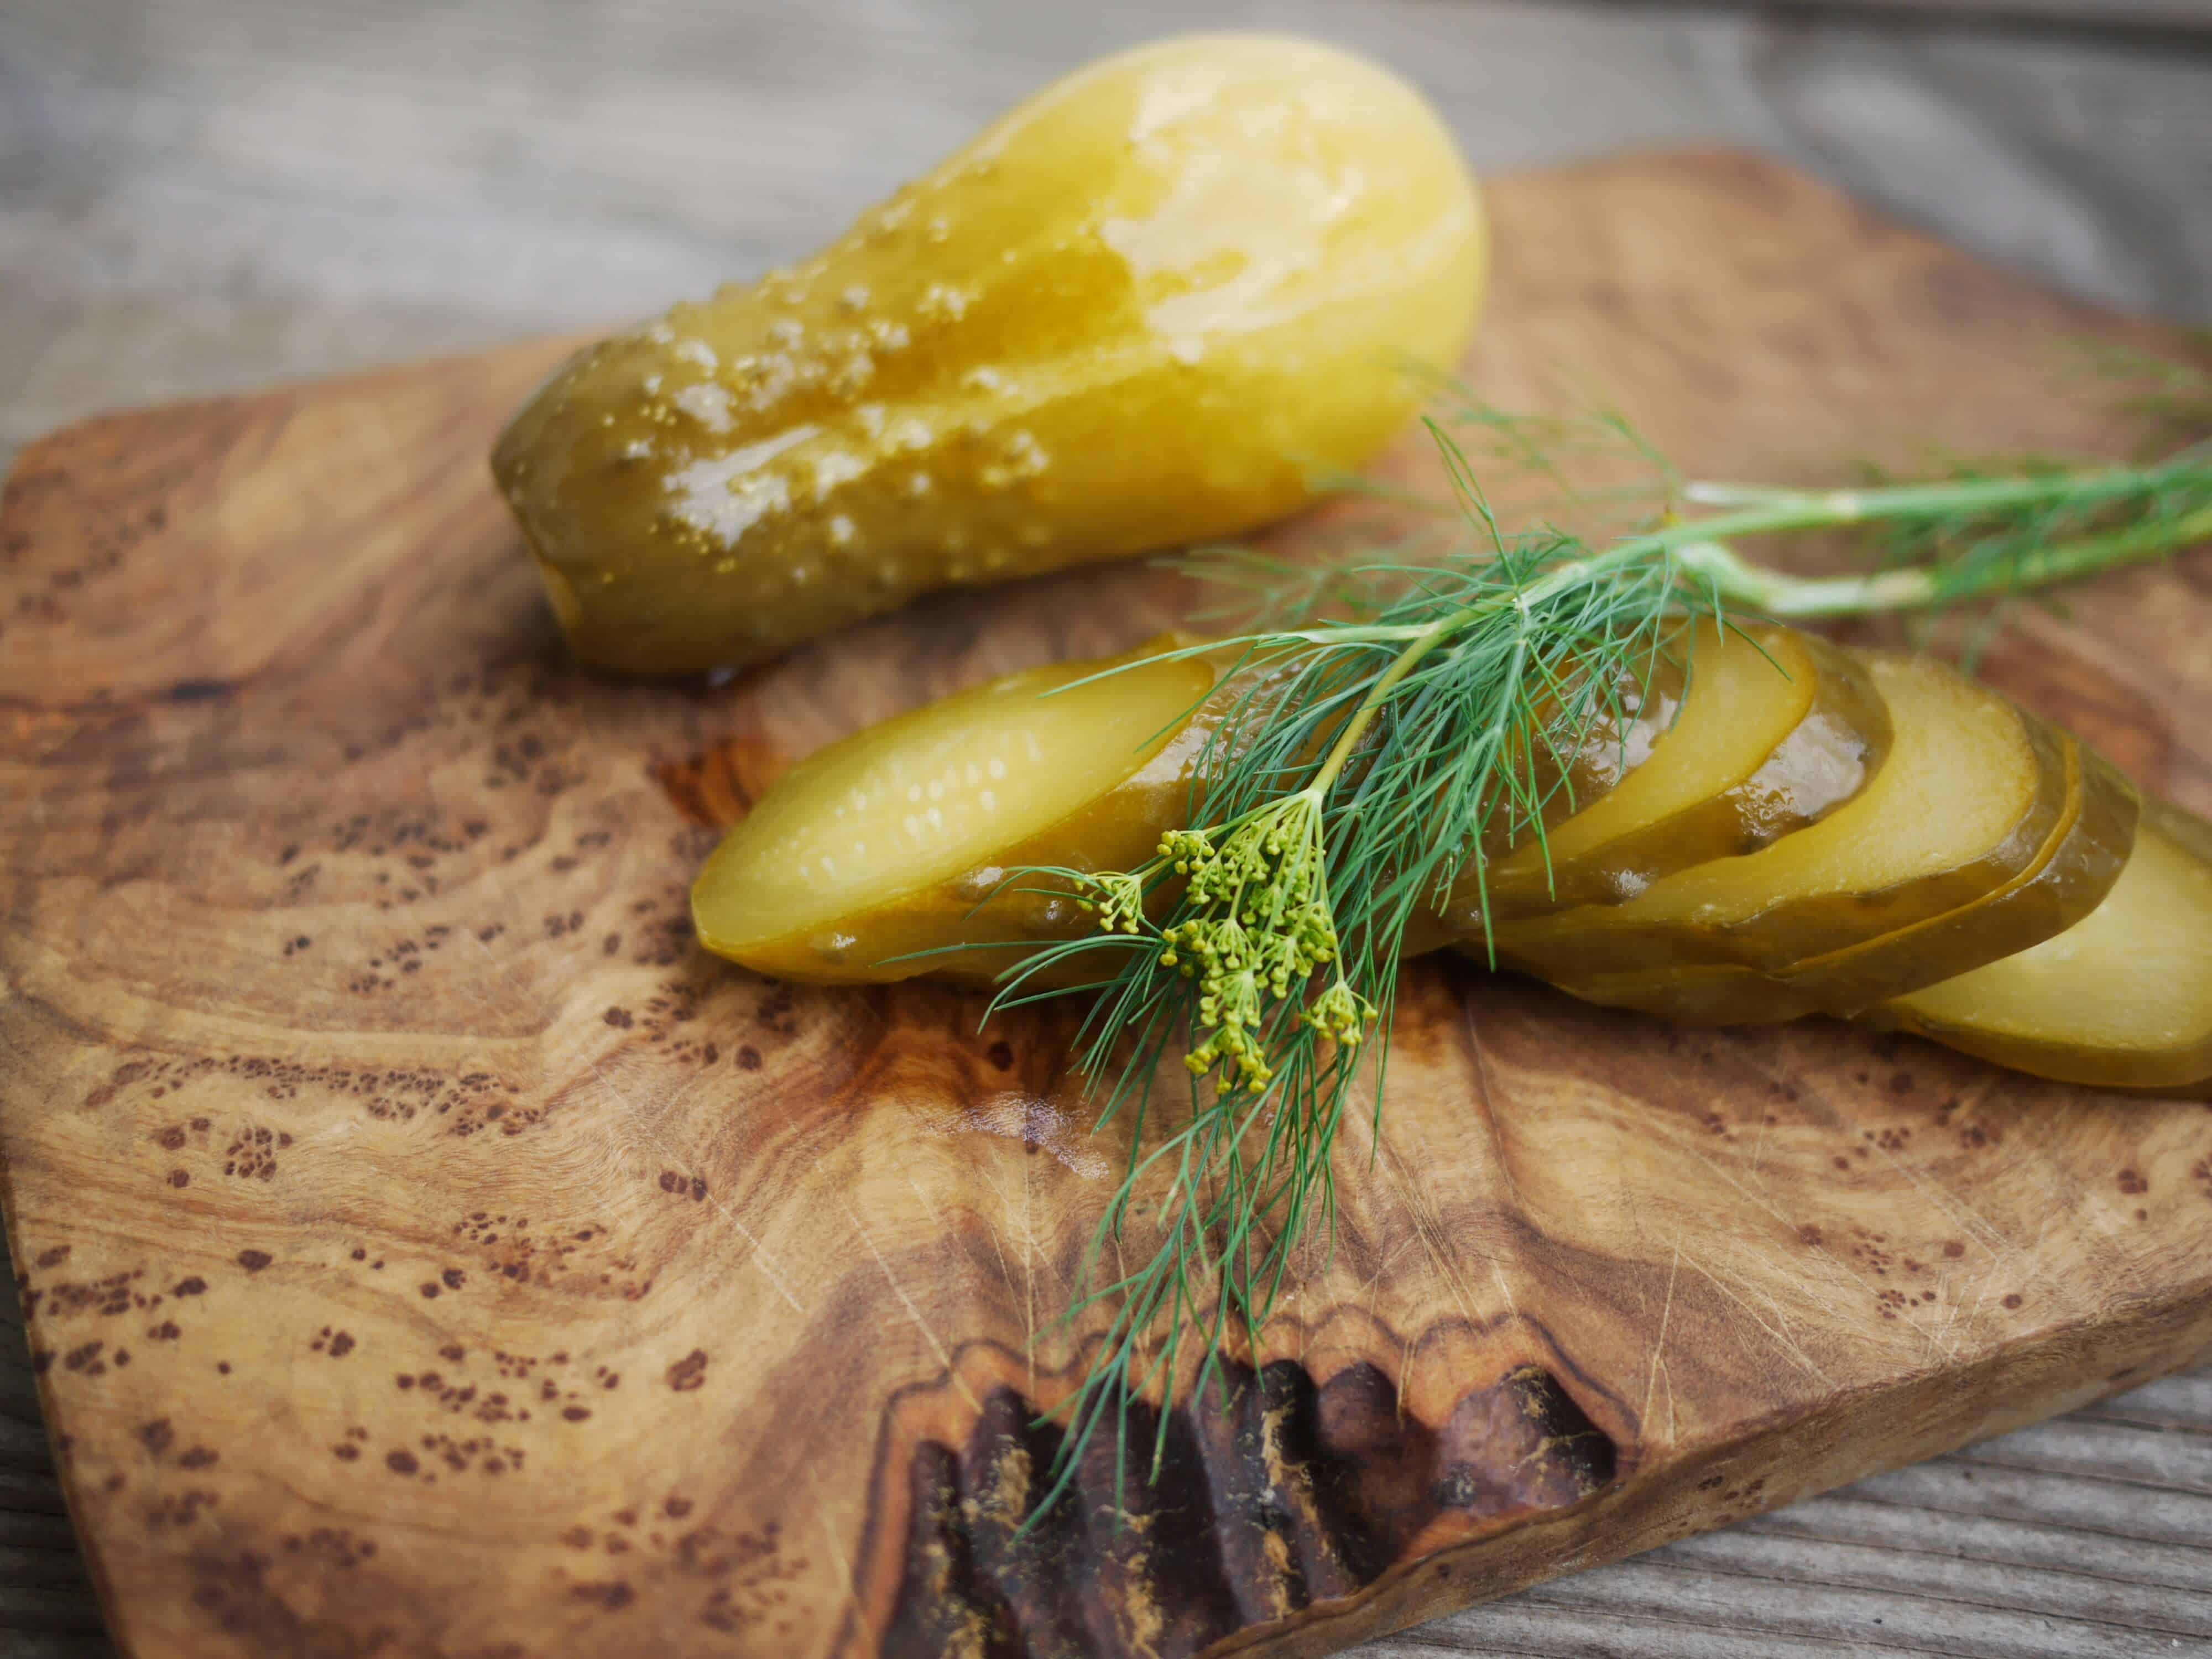 Homemade Lacto-fermented Pickles Recipe